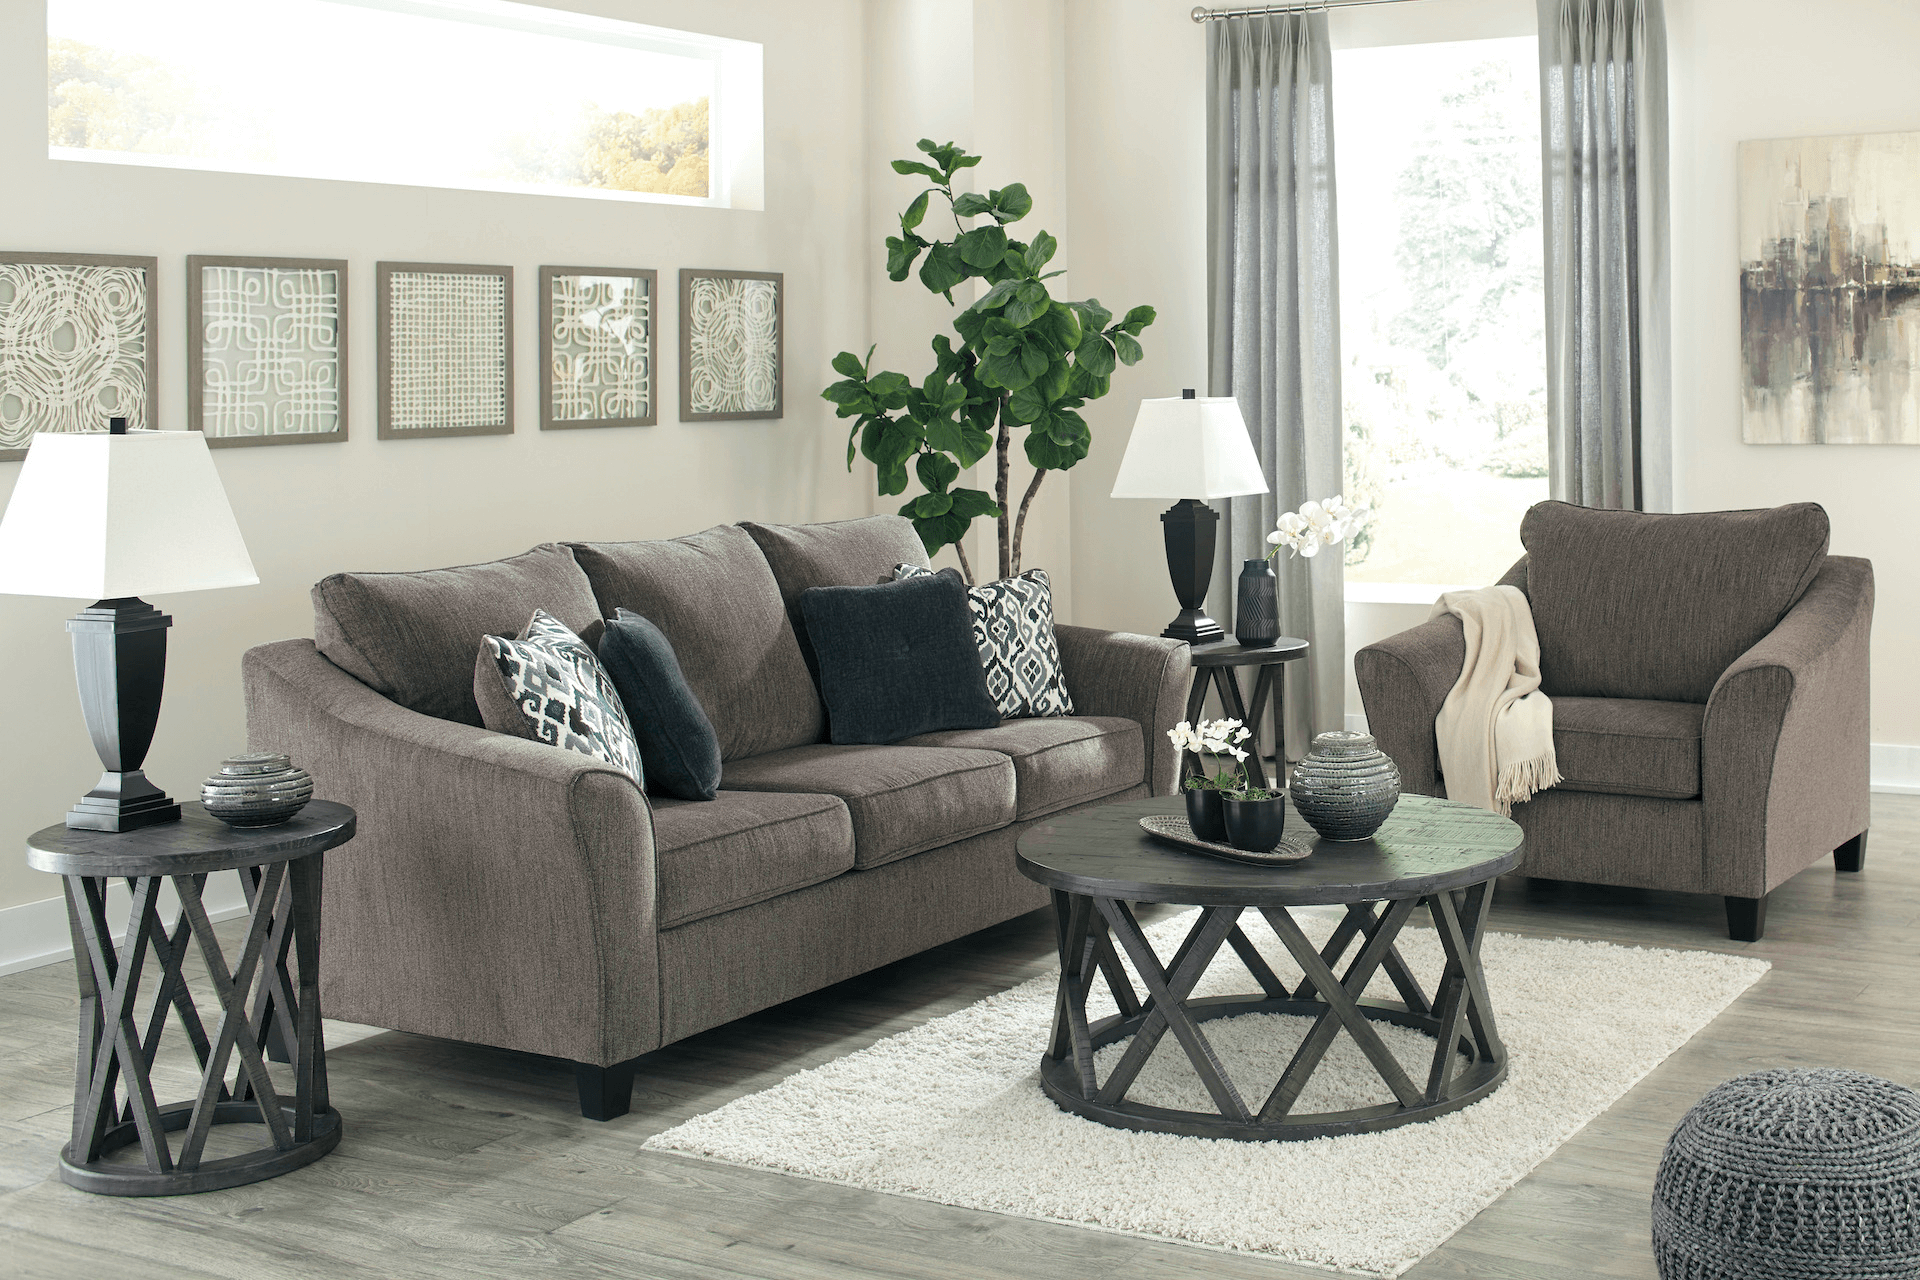 Atlantic_Furniture-Sofa_Sets-45806_w_T711_hi-res